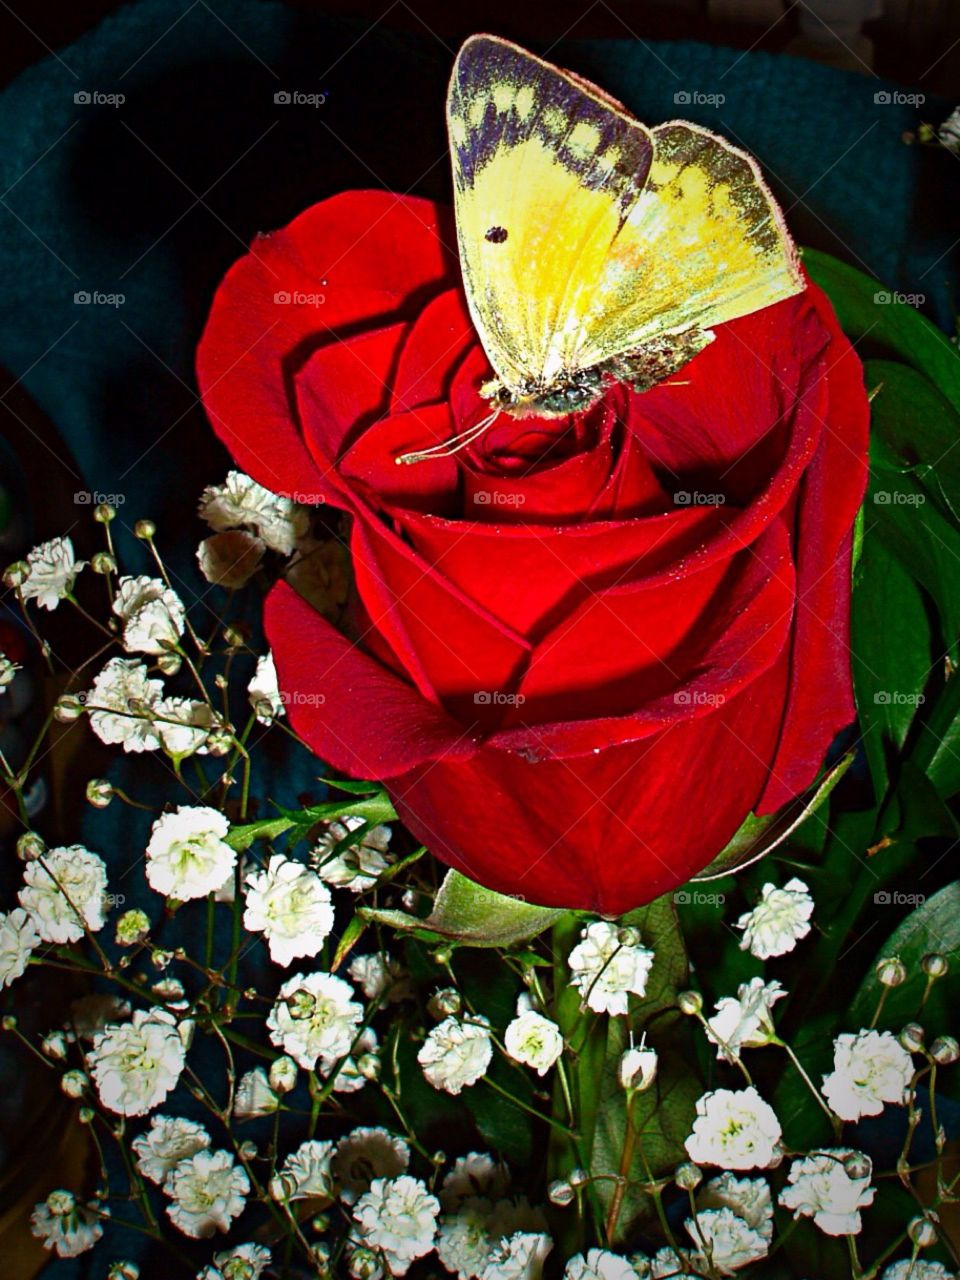 My Red Rose. Butterfly lands on My Red Rose